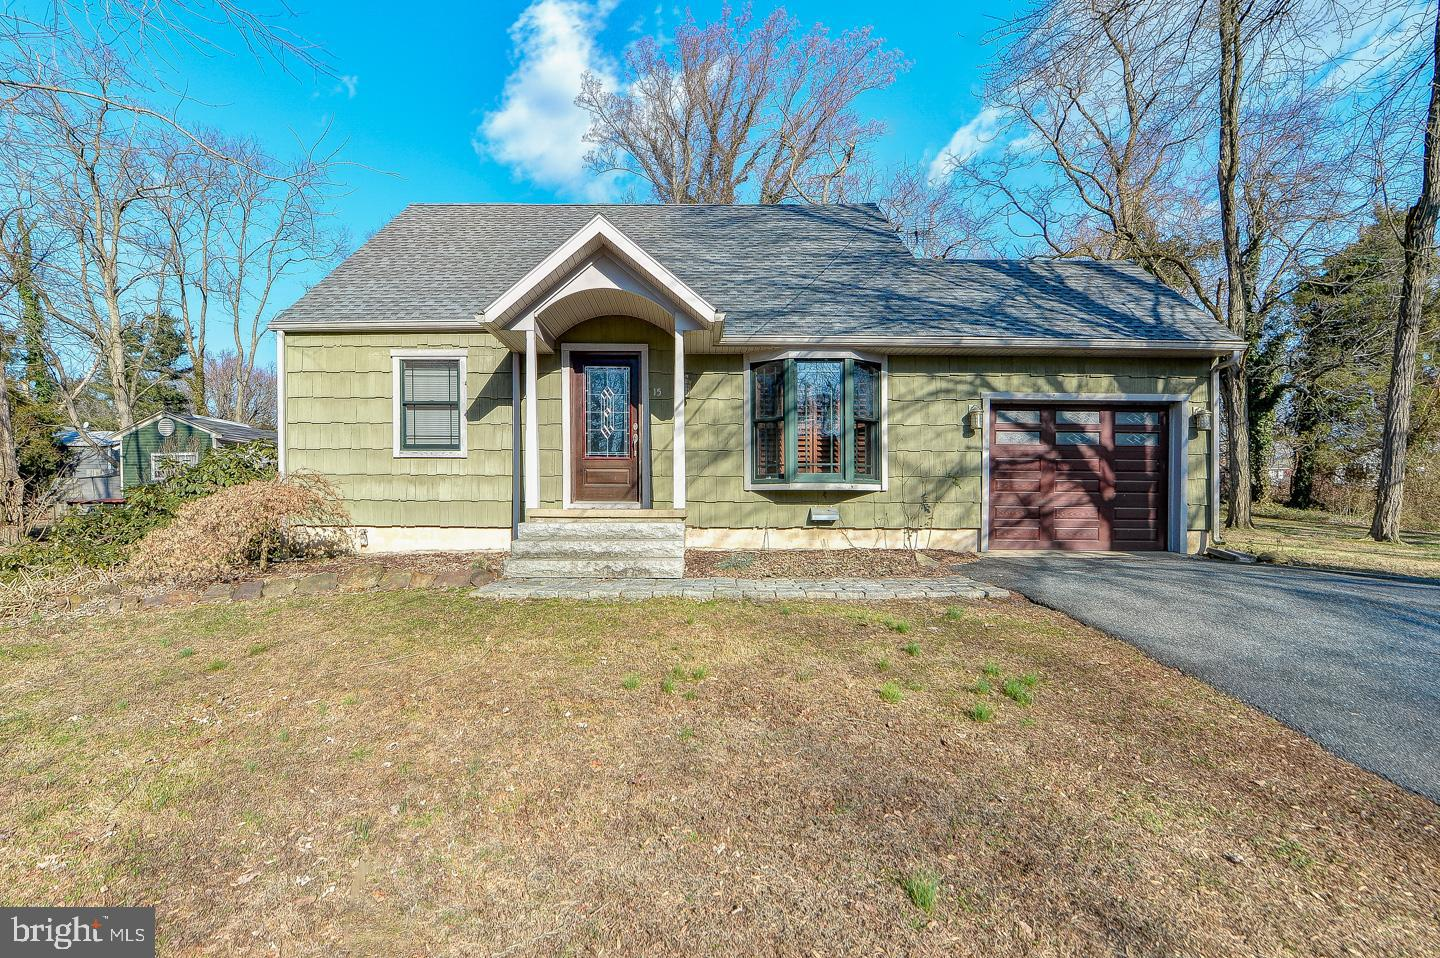 Welcome to 15 Bayside Dr. located in the desirable water front community of North East Heights. This